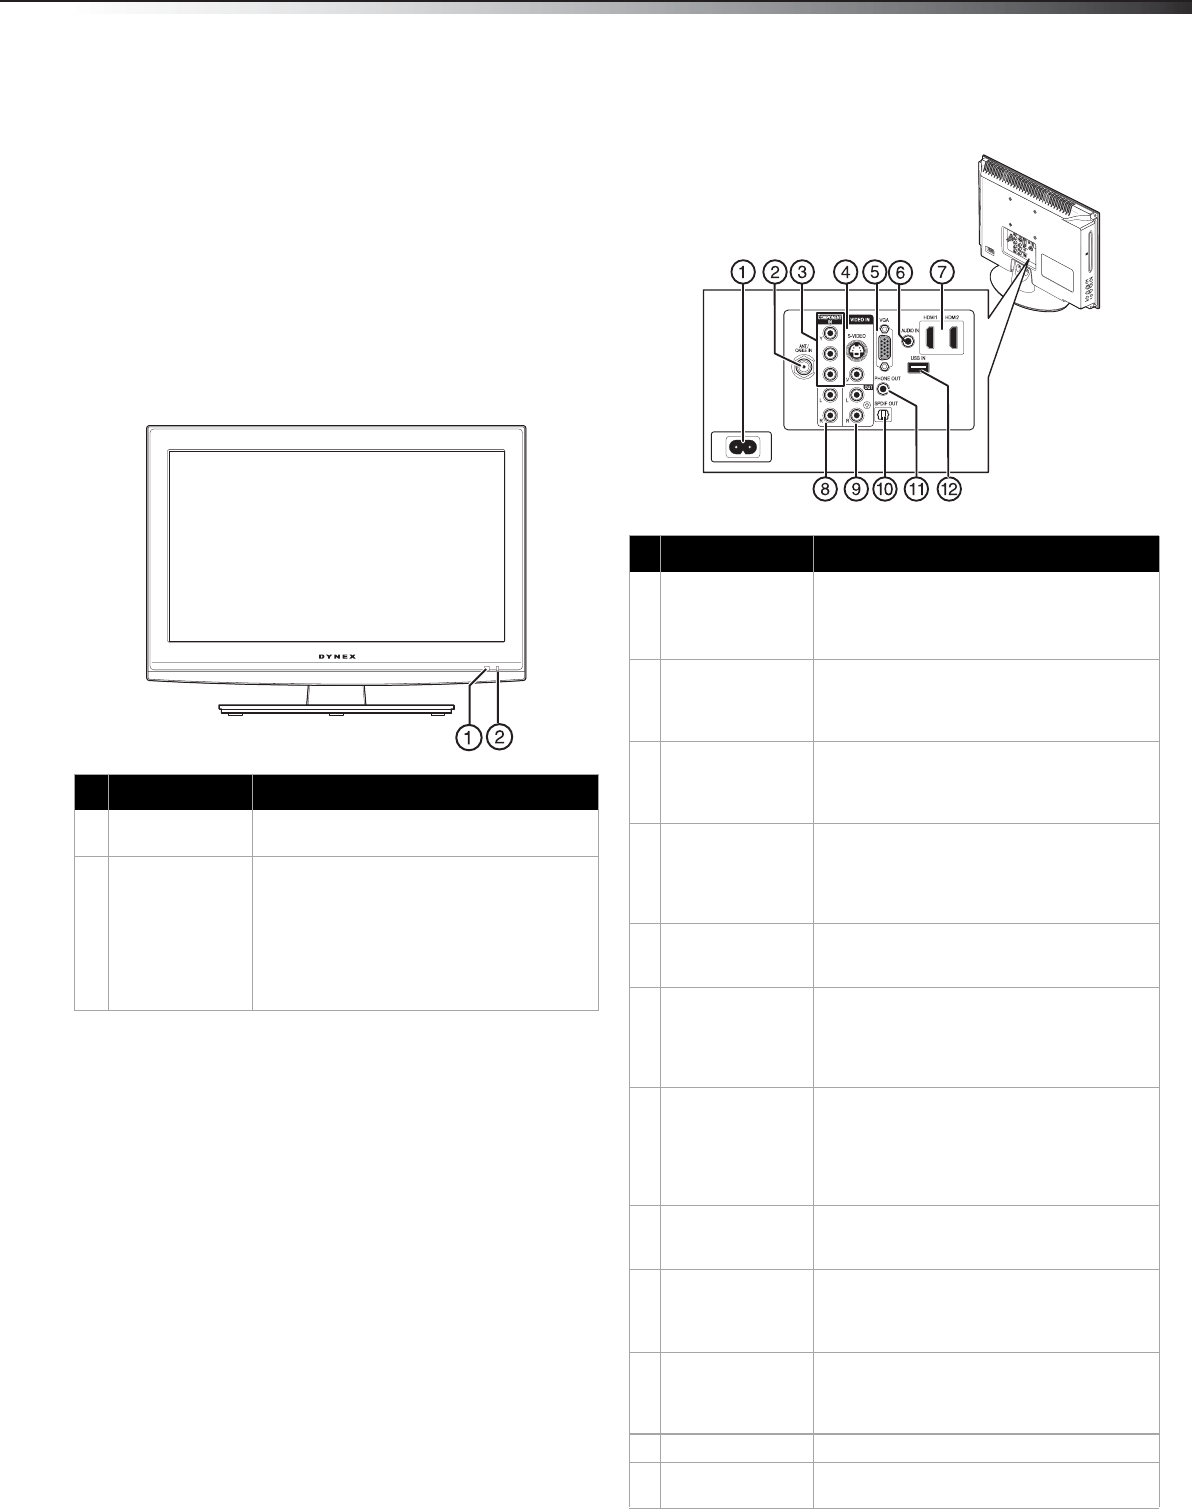 Page 8 of Dynex Flat Panel Television DX-19LD150A11 User